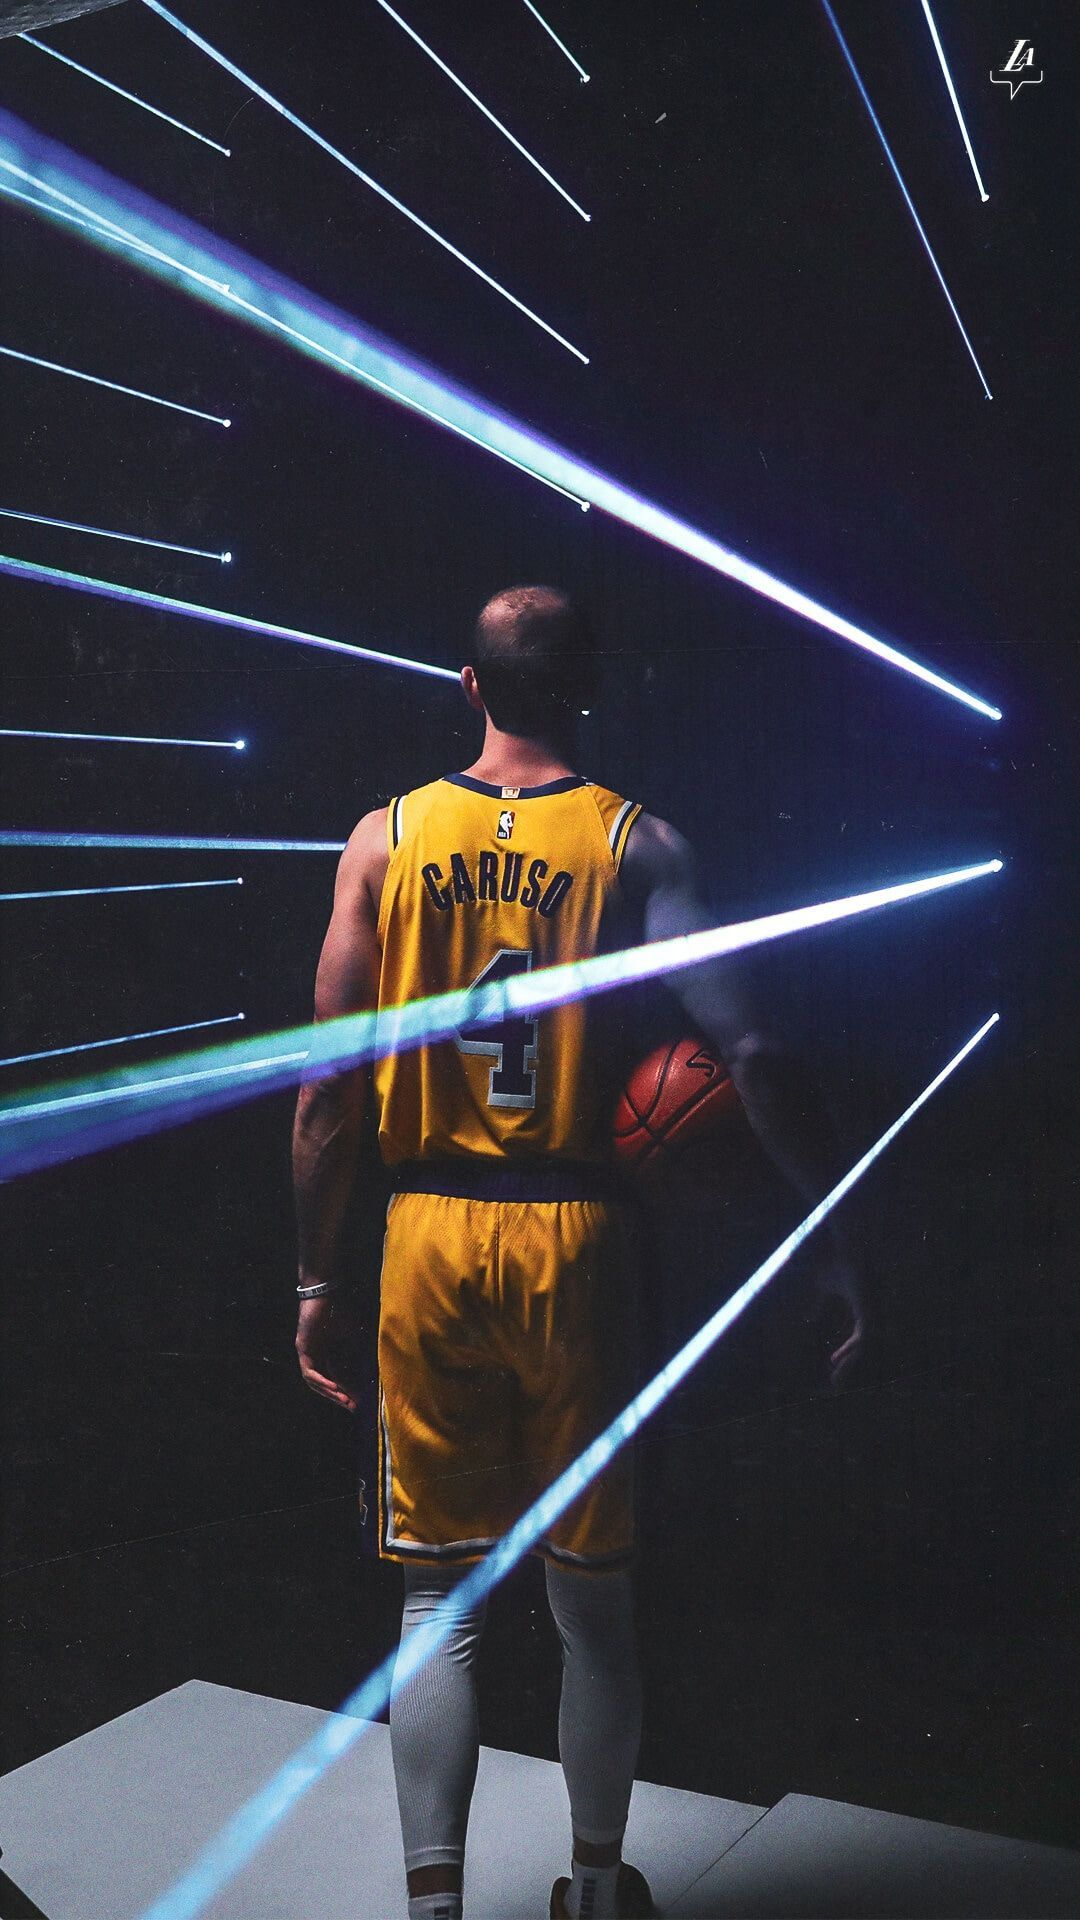 Dunk Kobe Bryant Wallpaper Android Download Dunk Kobe Bryant Wallpaper Iphone Android Bryant In 2020 Kobe Bryant Wallpaper Kobe Bryant Lebron James Wallpapers